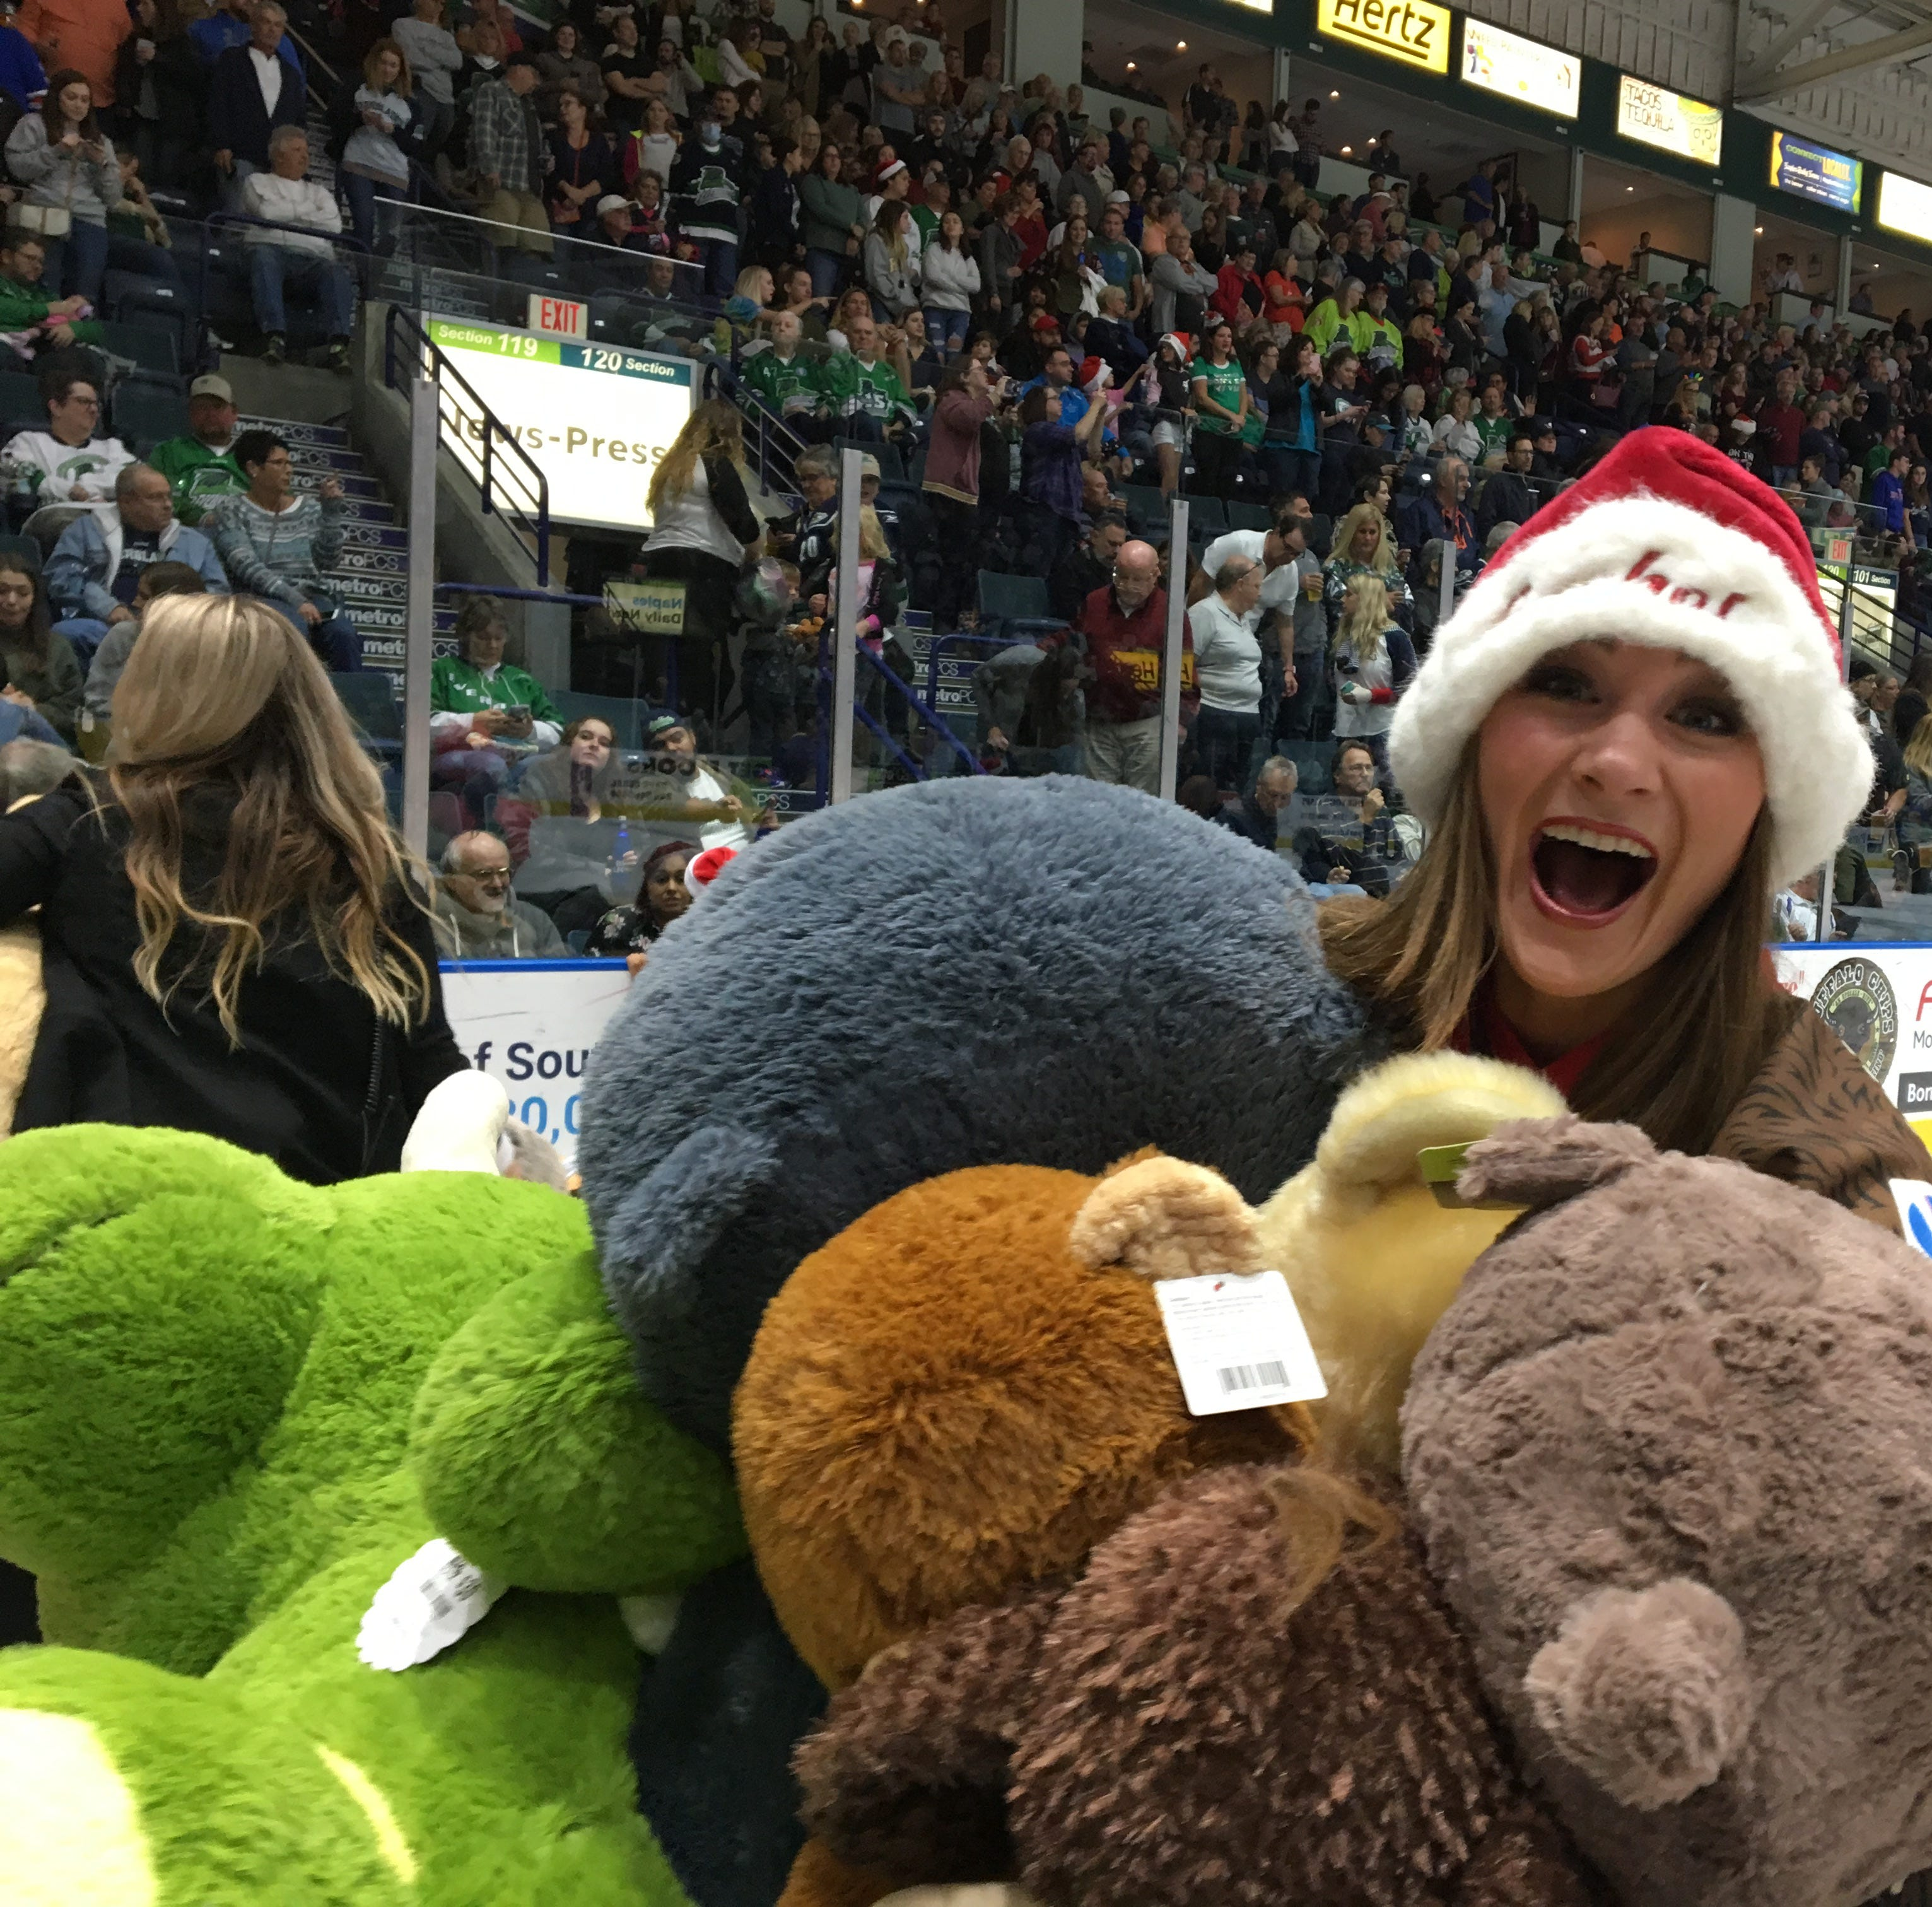 Florida Everblades win, teddy bears tossed and a SWFL tradition lives on